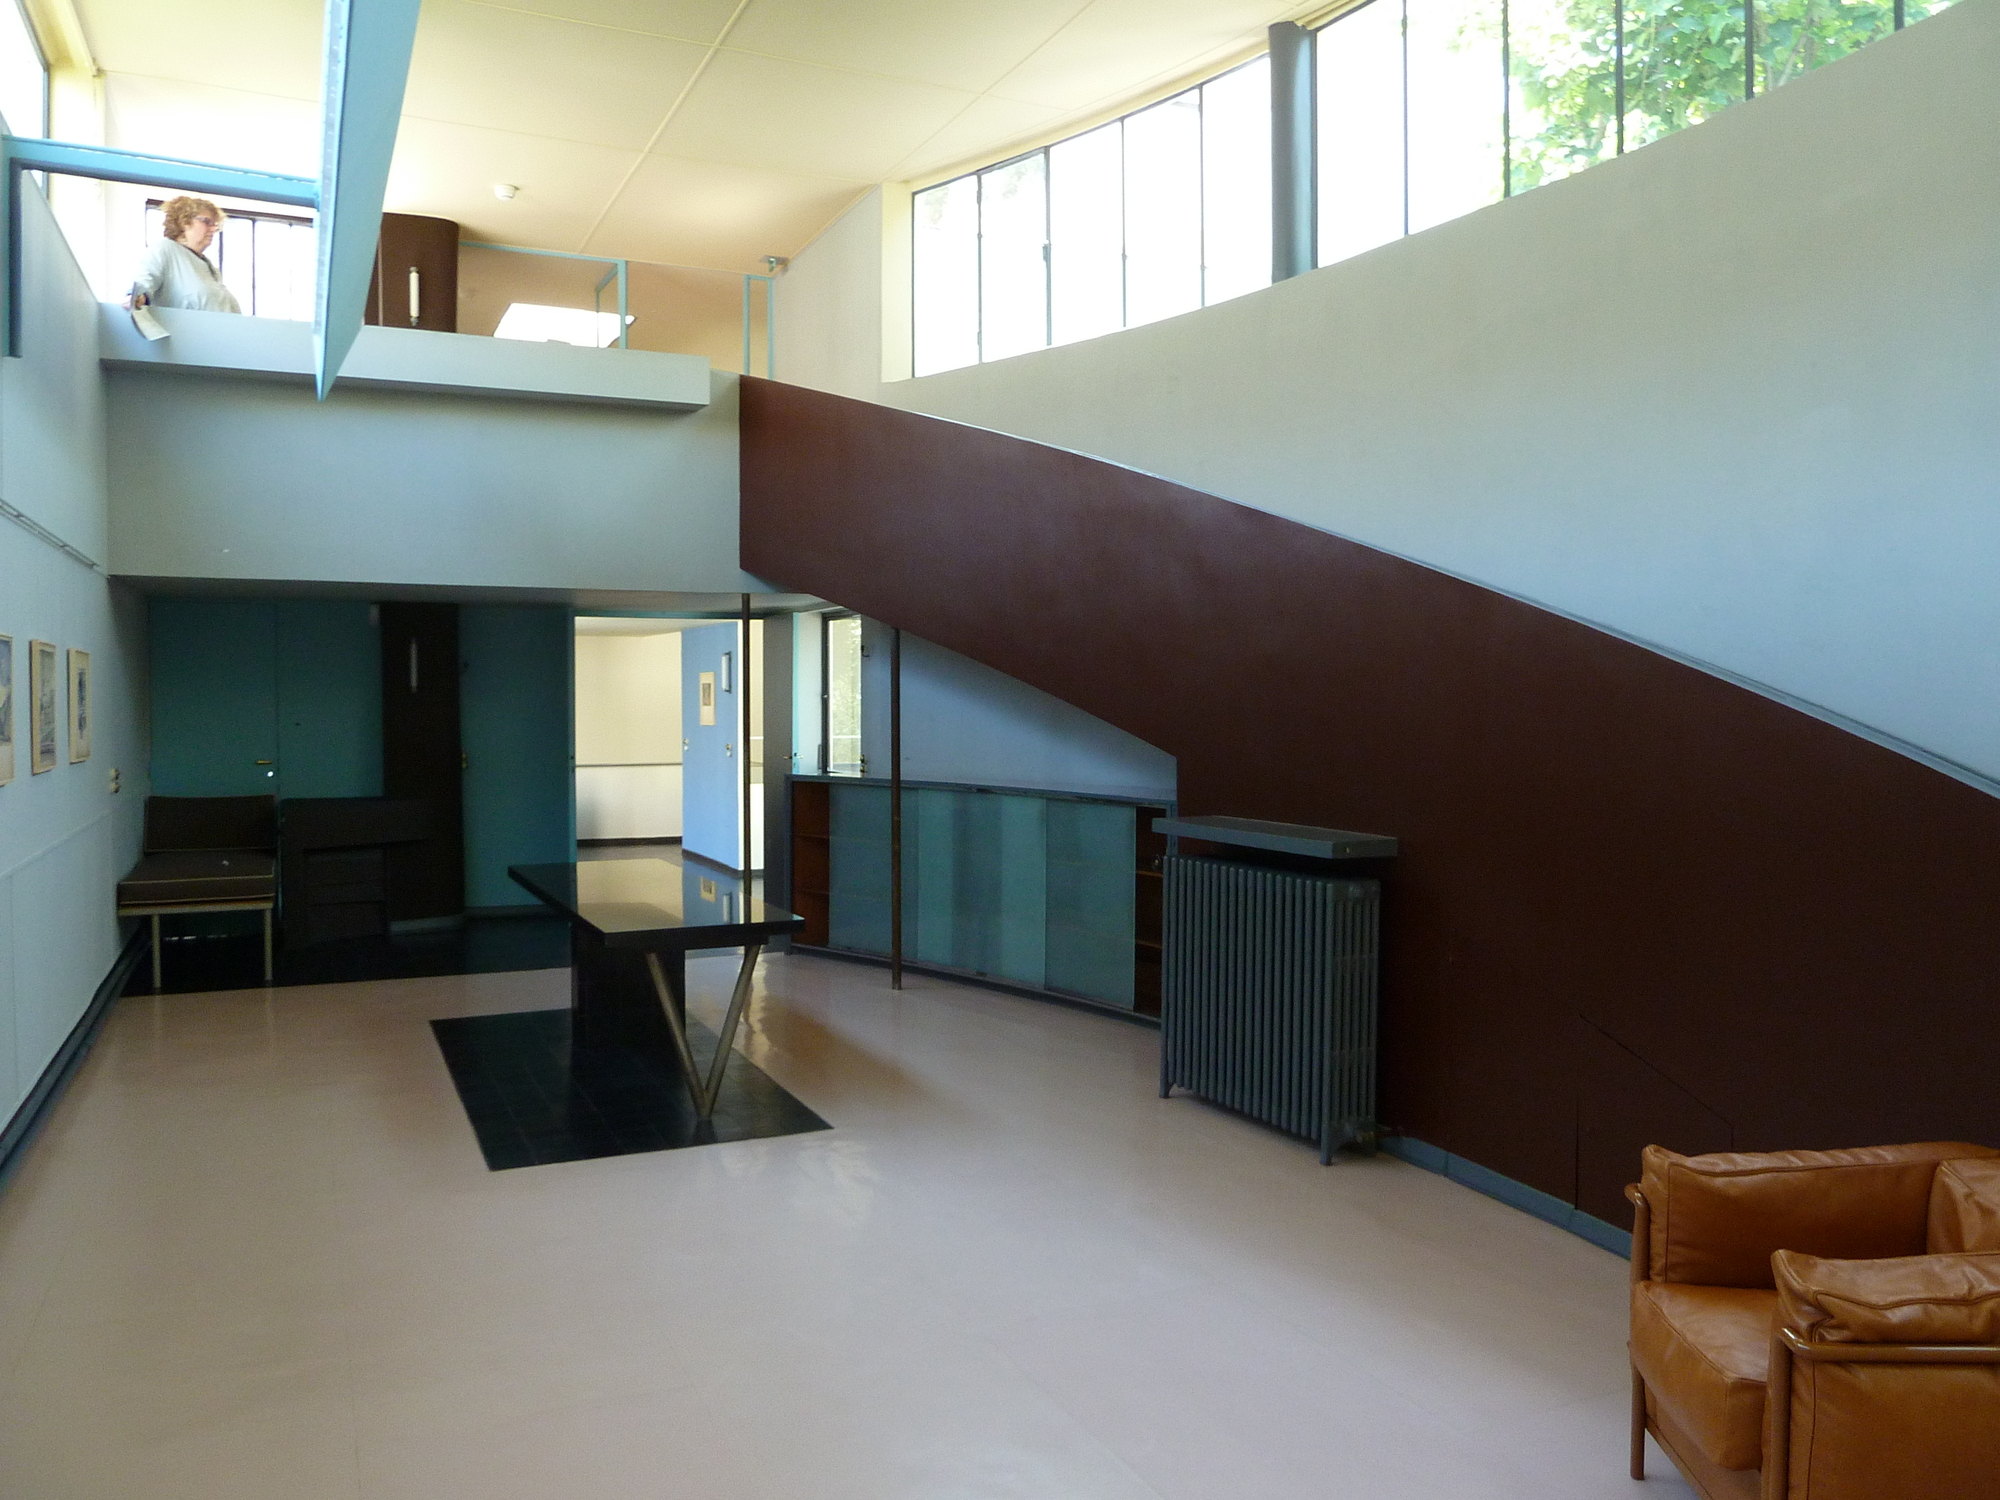 Gallery of see the 17 le corbusier projects named as - Maison creusee dans la roche ...